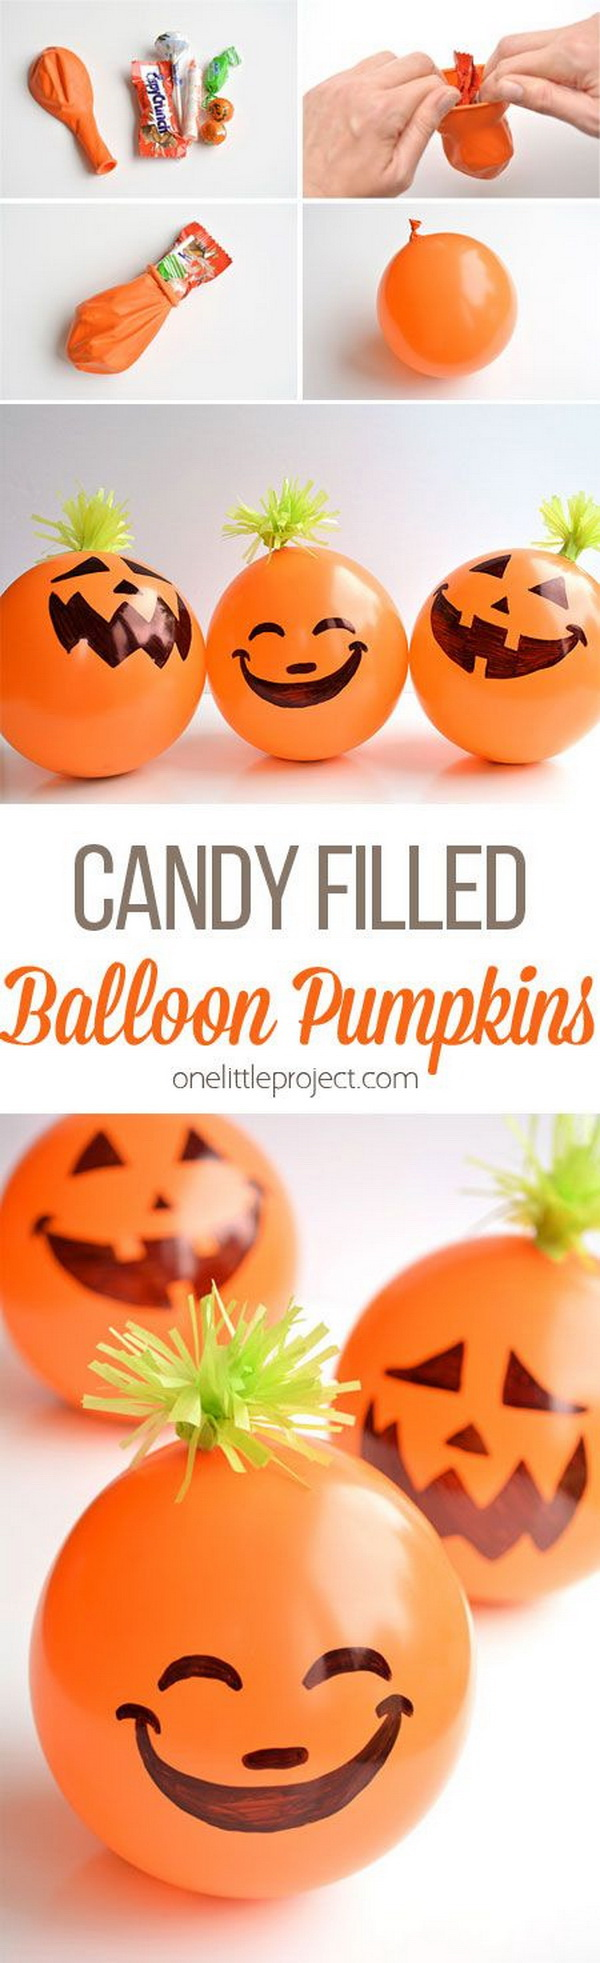 Candy Filled Balloon Pumpkins. These adorable candy filled balloon pumpkins are great as party favors for any kind of Halloween party! And they're so easy to make!